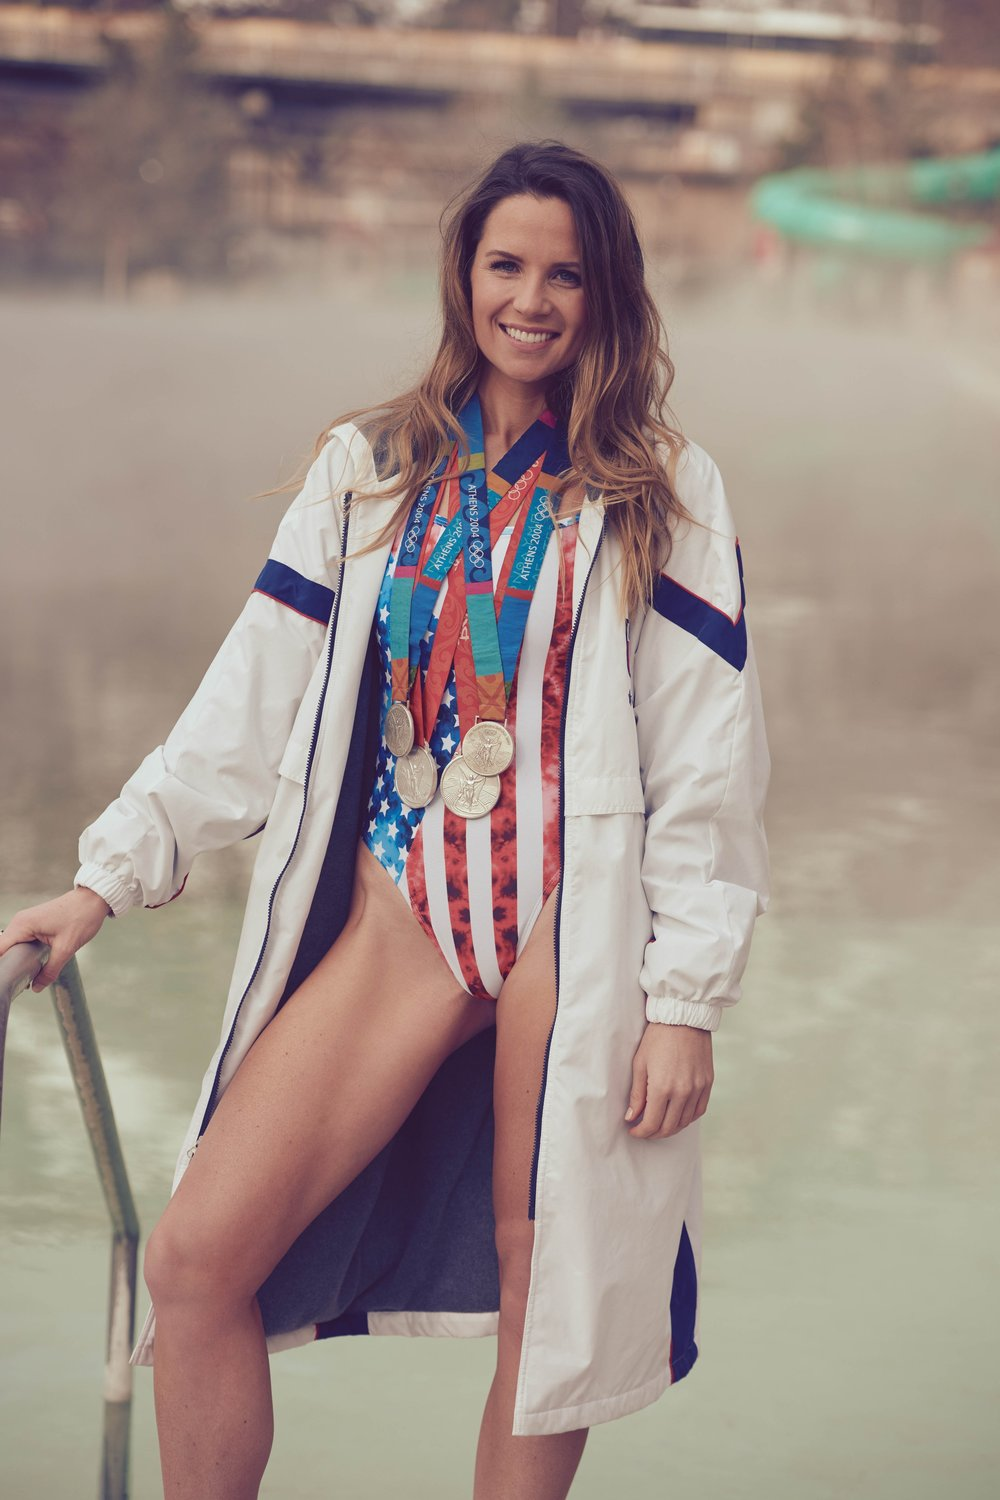 Kara Lynn Joyce  - 3-Time USA Olympian (04', 08', 12') (Swimming)Founder, LEAD Sports SummitCurrent City: Atlanta,GA